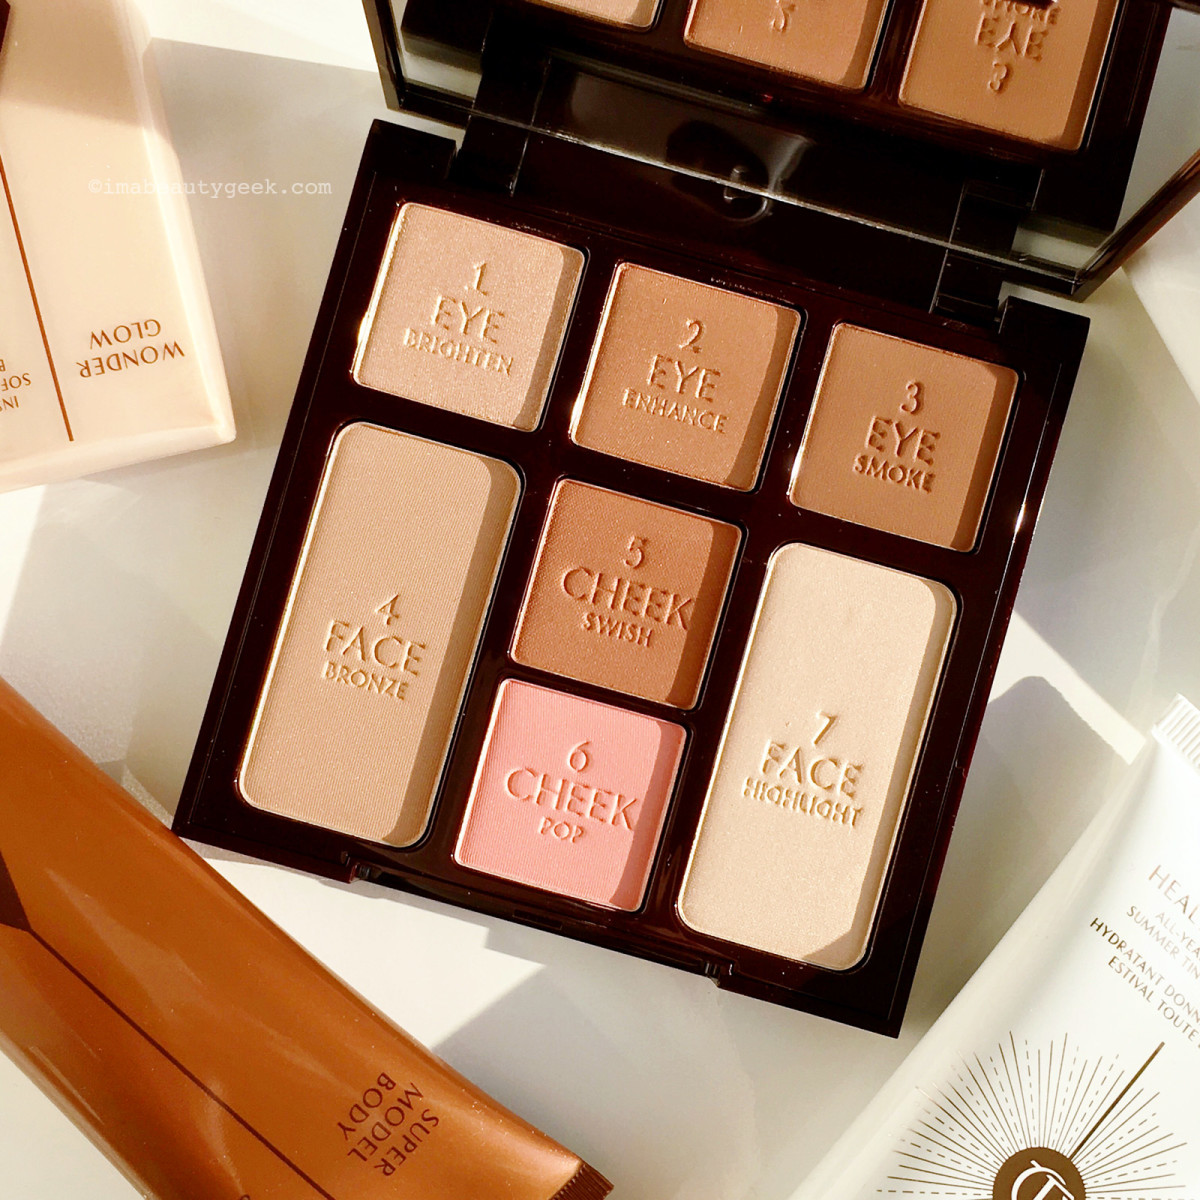 Charlotte Tilbury The Beauty Glow face palette #glowmo